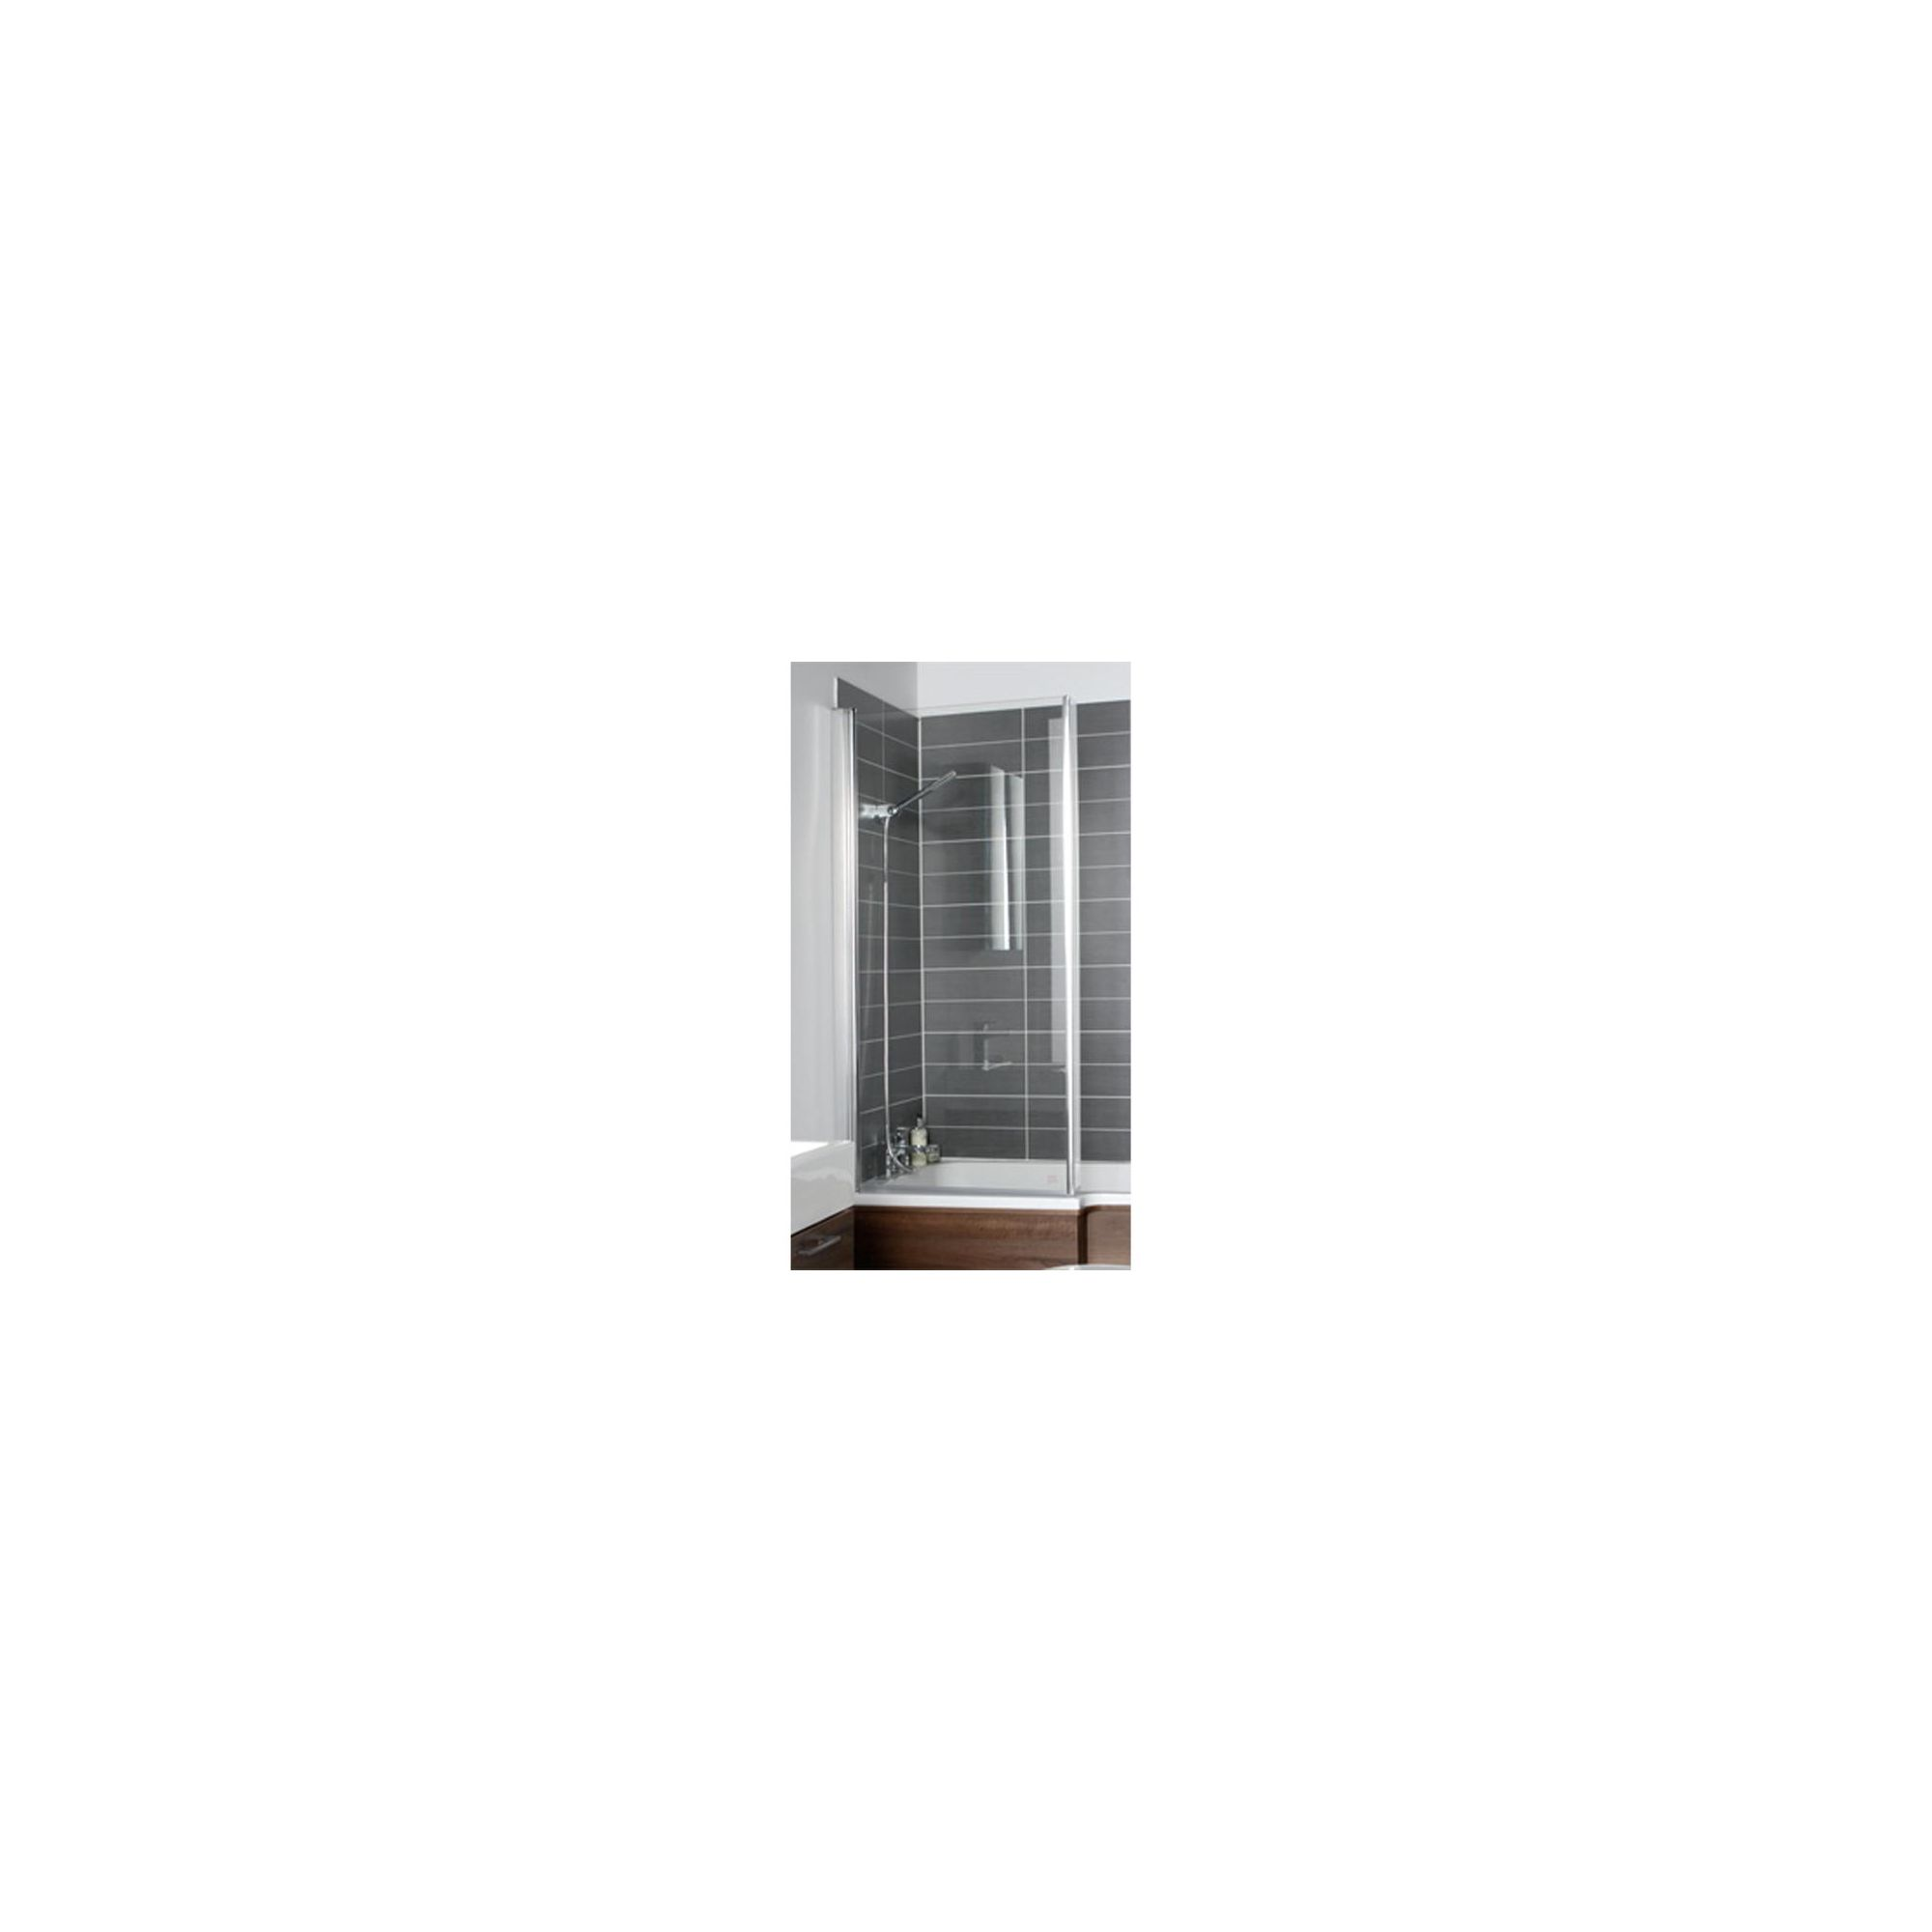 Balterley Square Folding Bath Shower Screen 1420mm x 920mm - 6mm Glass at Tescos Direct